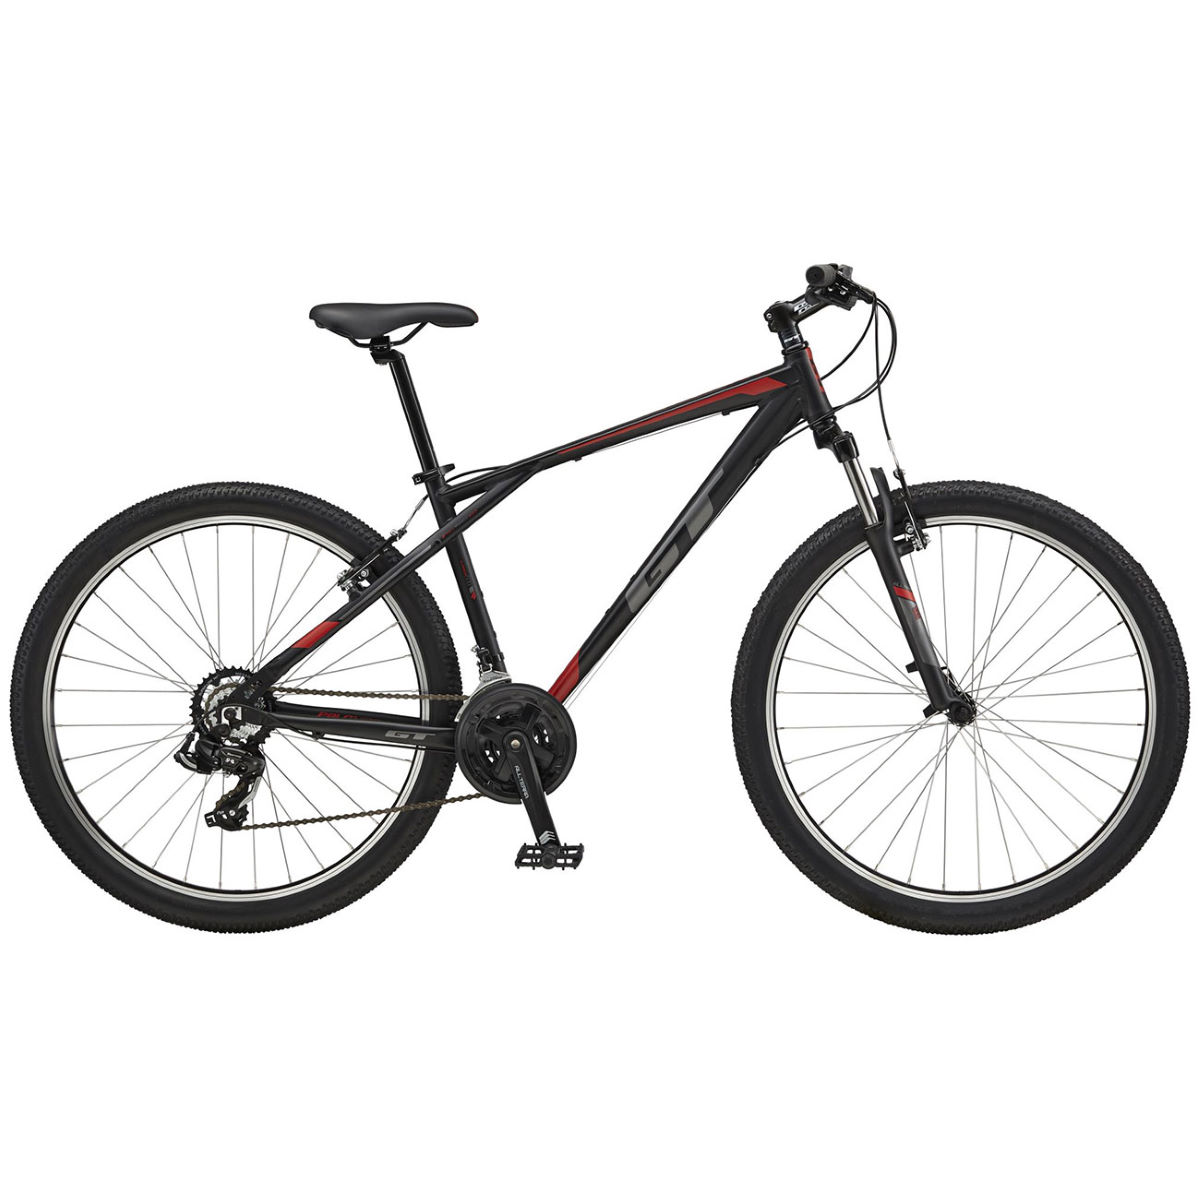 GT Palomar (2017) Mountain Bike - XS Stock Bike Noir VTT semi-rigides